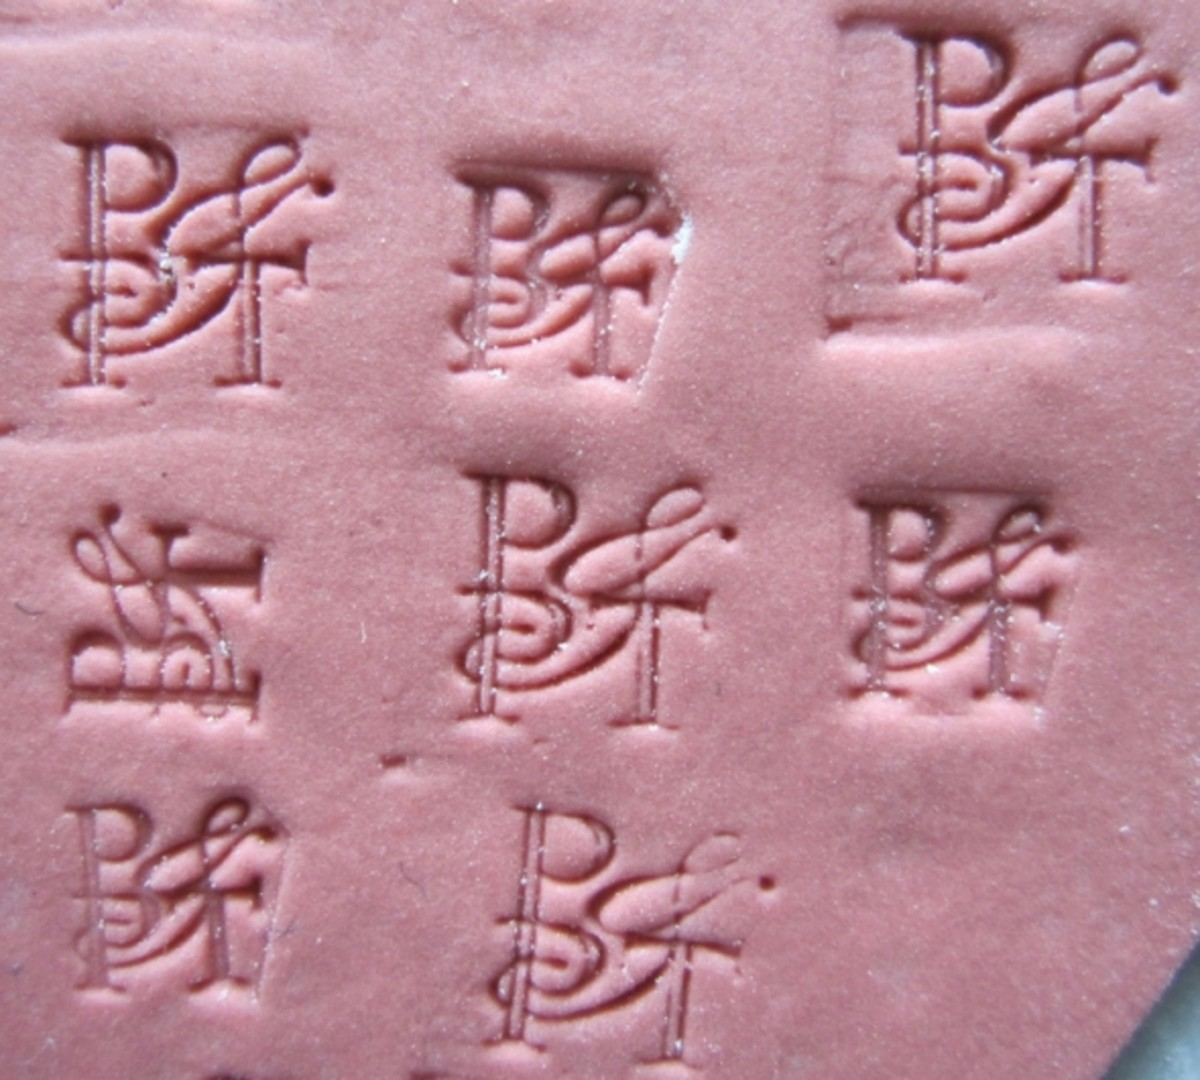 Test impressions of a customized logo stamp on a sheet of clay